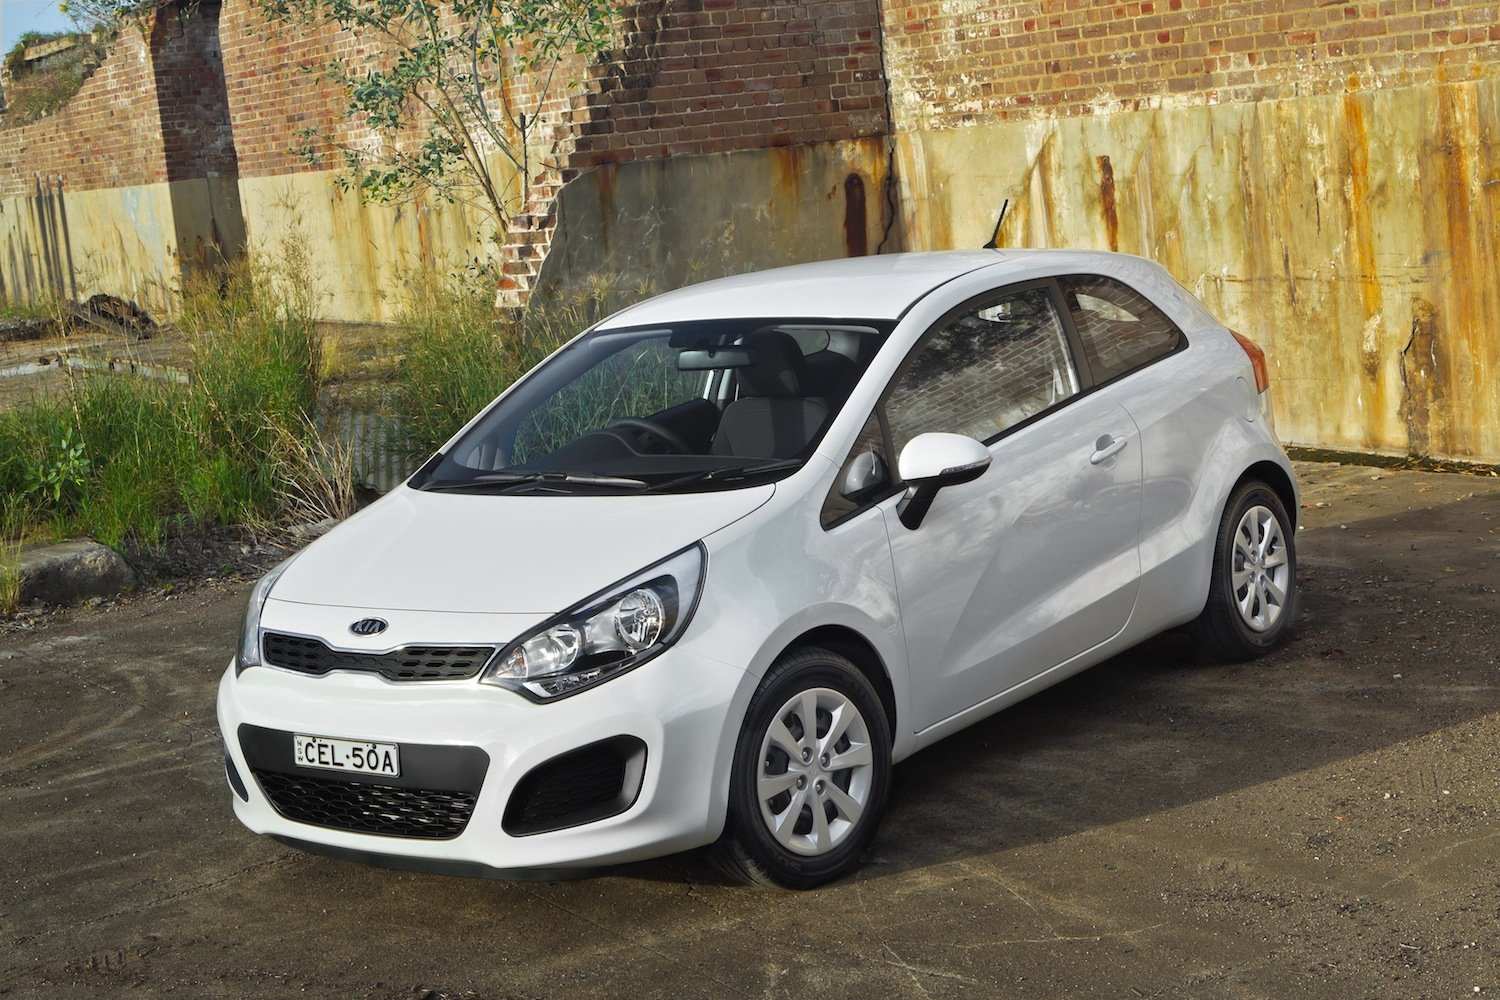 Kia Rio 3 Door Hatch Sedan Review Photos Caradvice